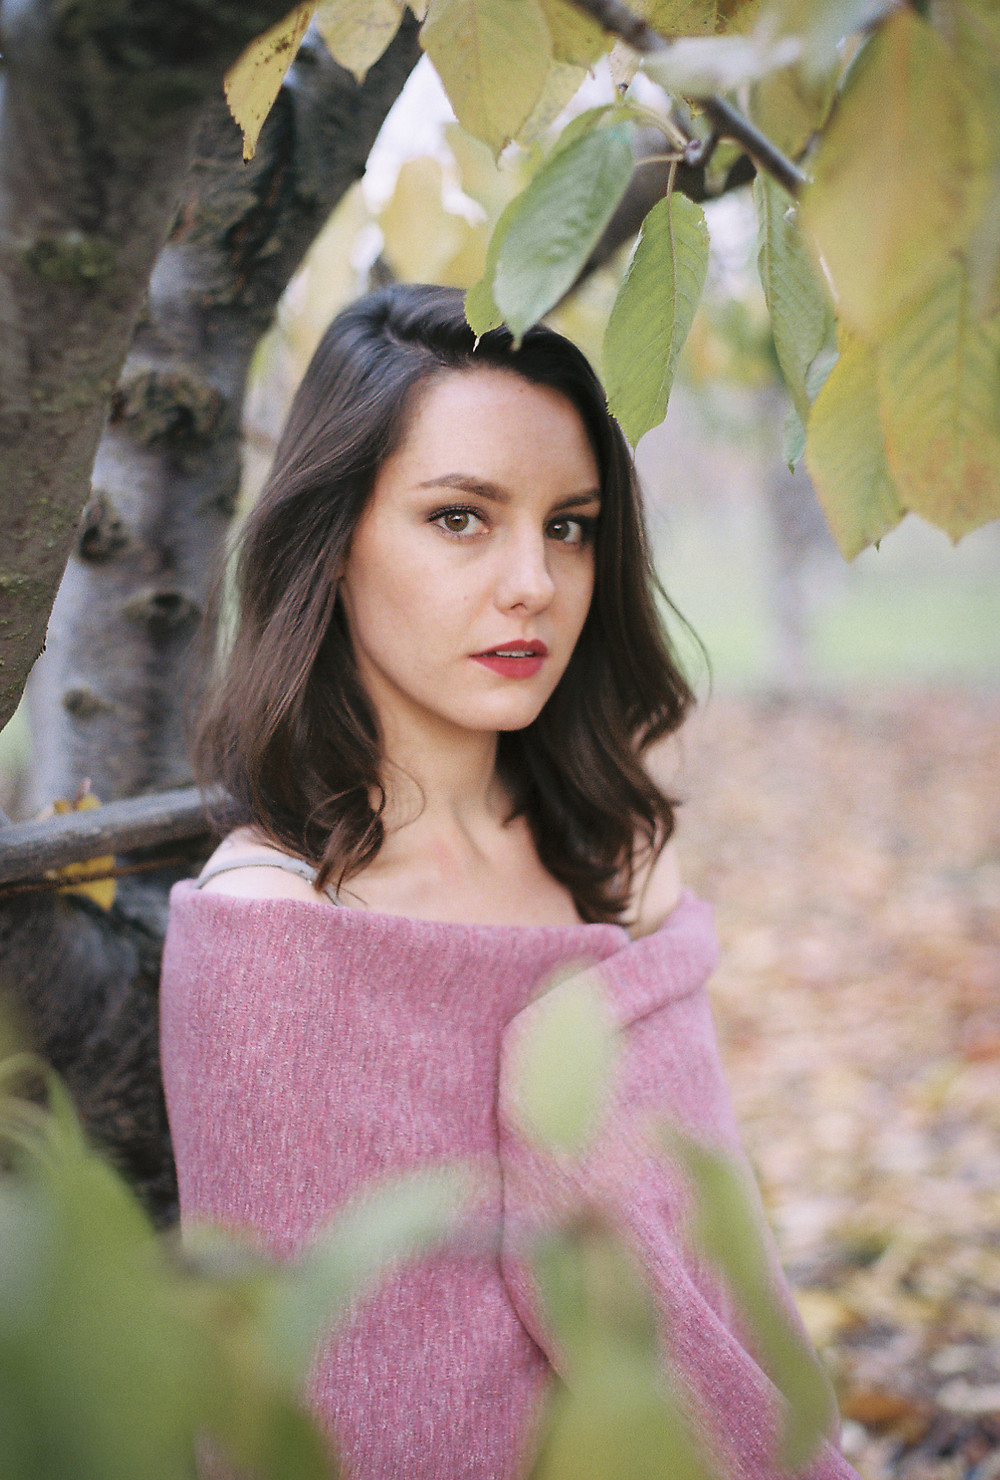 A film portrait photograph of the model sitting underneath the pear tree at Martial Cottle Park.